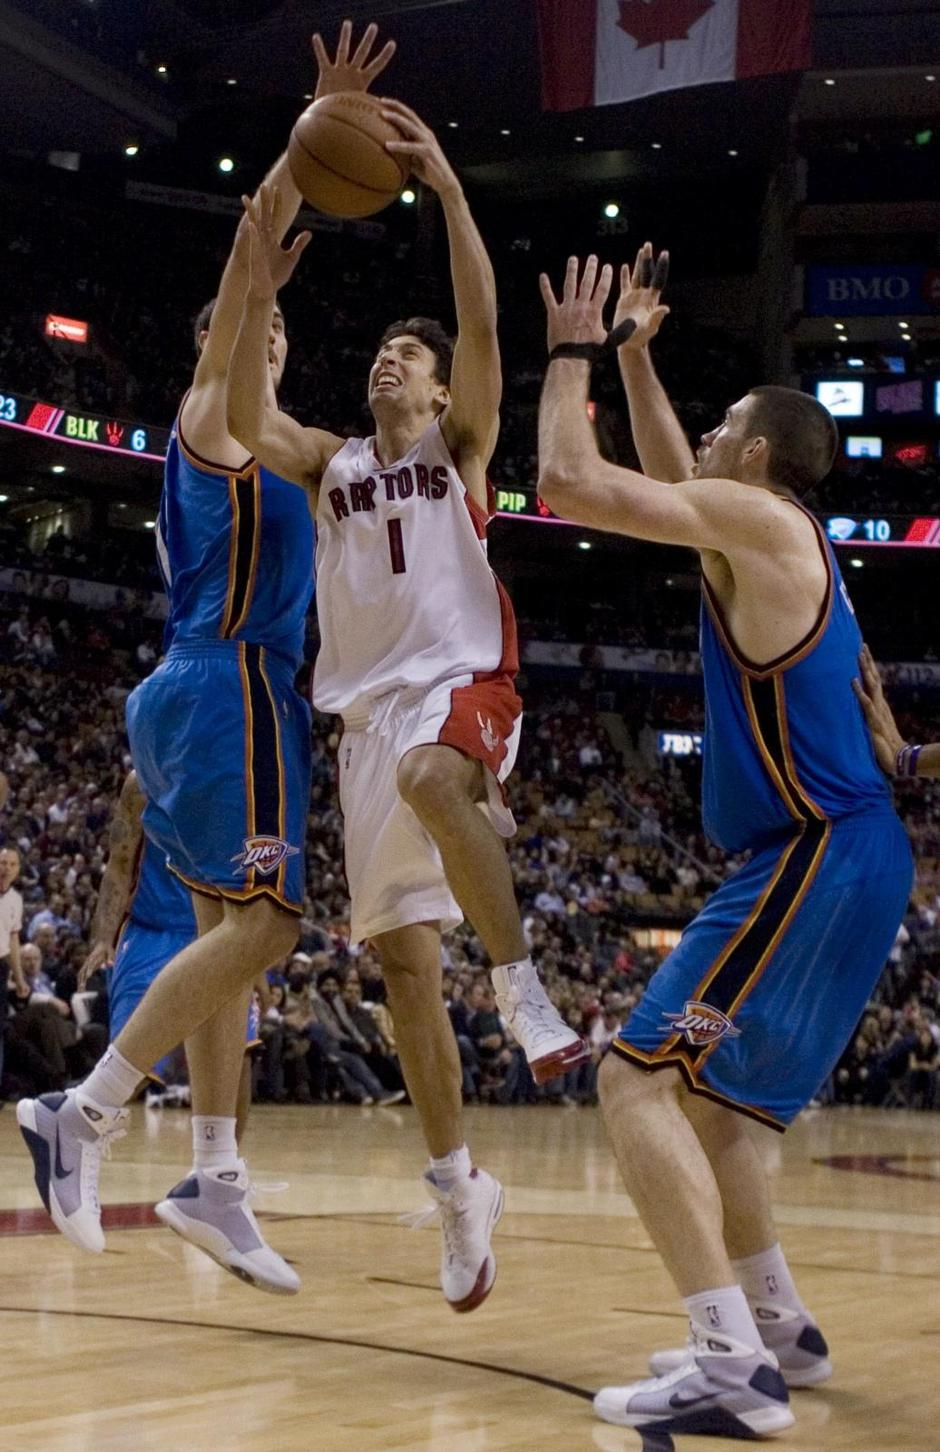 Thunder Raptors Basketball | Autor: CHRIS YOUNG/Press Association/PIXSELL